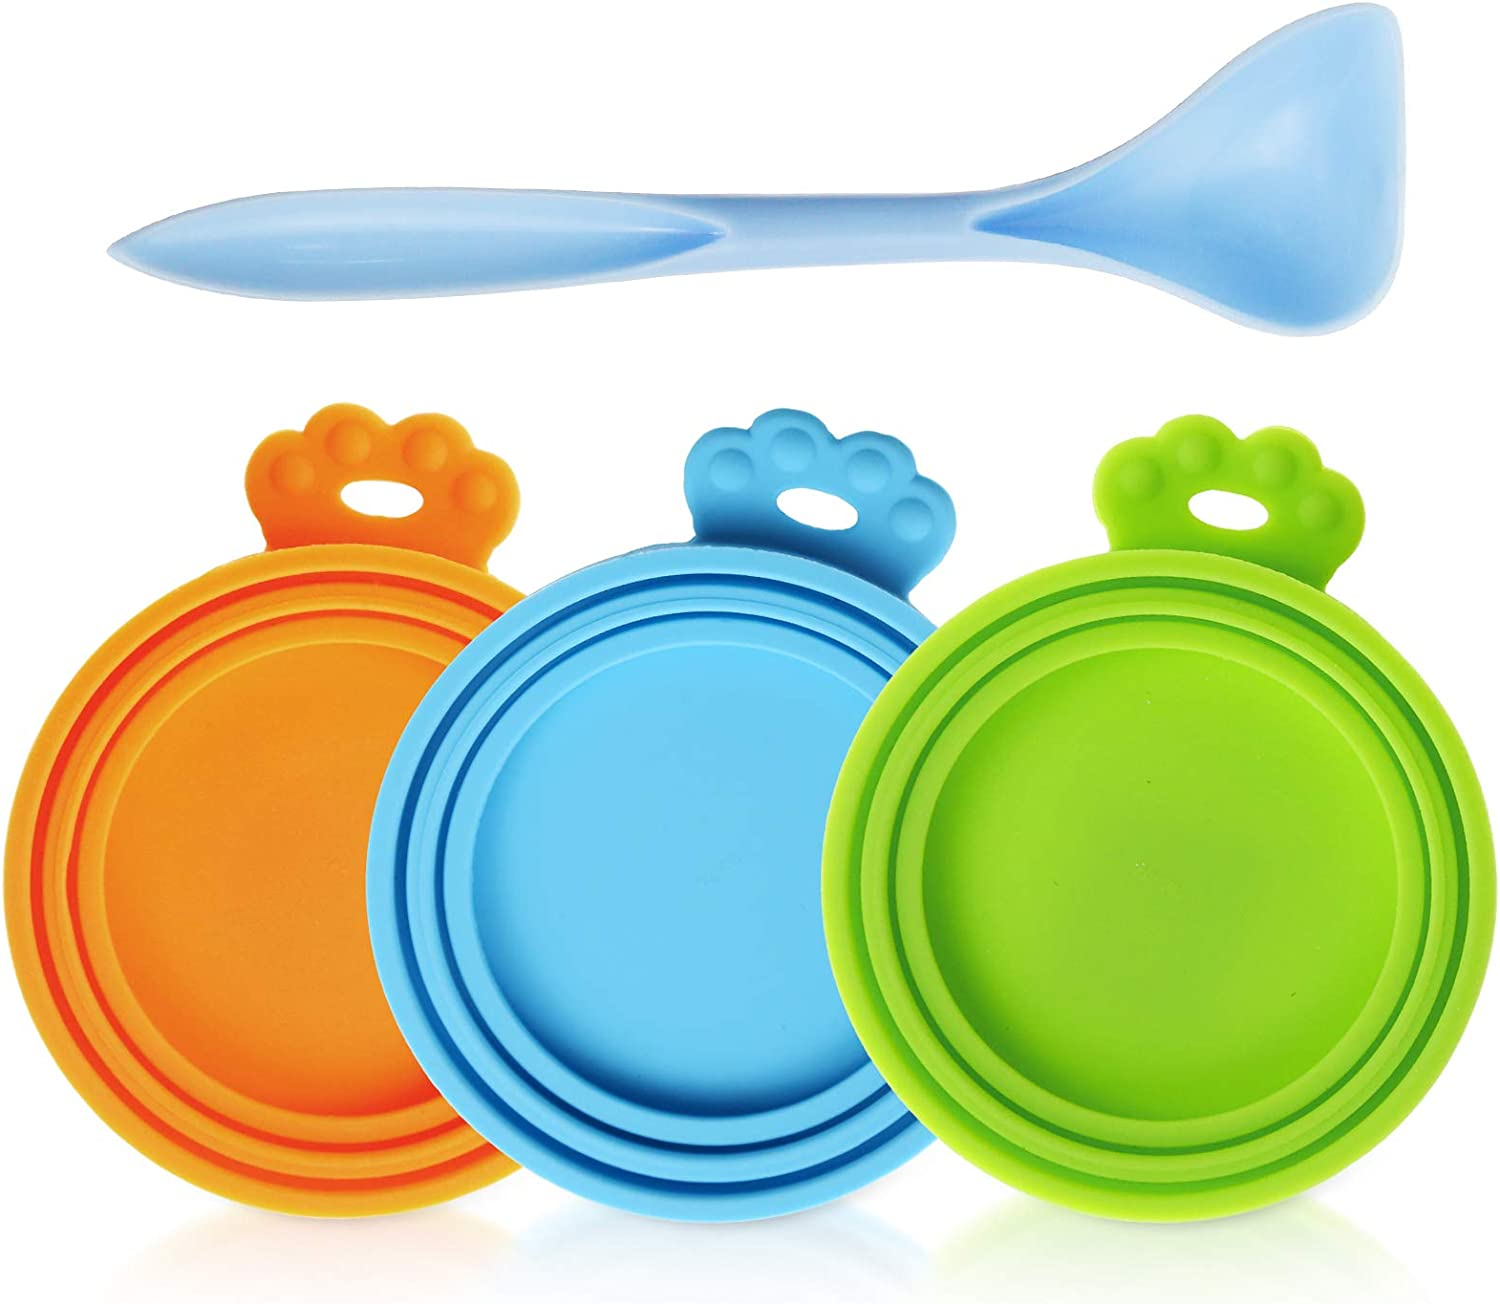 Plaifey Pet Food Can Lids Silicone Dog and cat can Food lids Covers Leakproof Fit Multiple Sizes for Canned Food